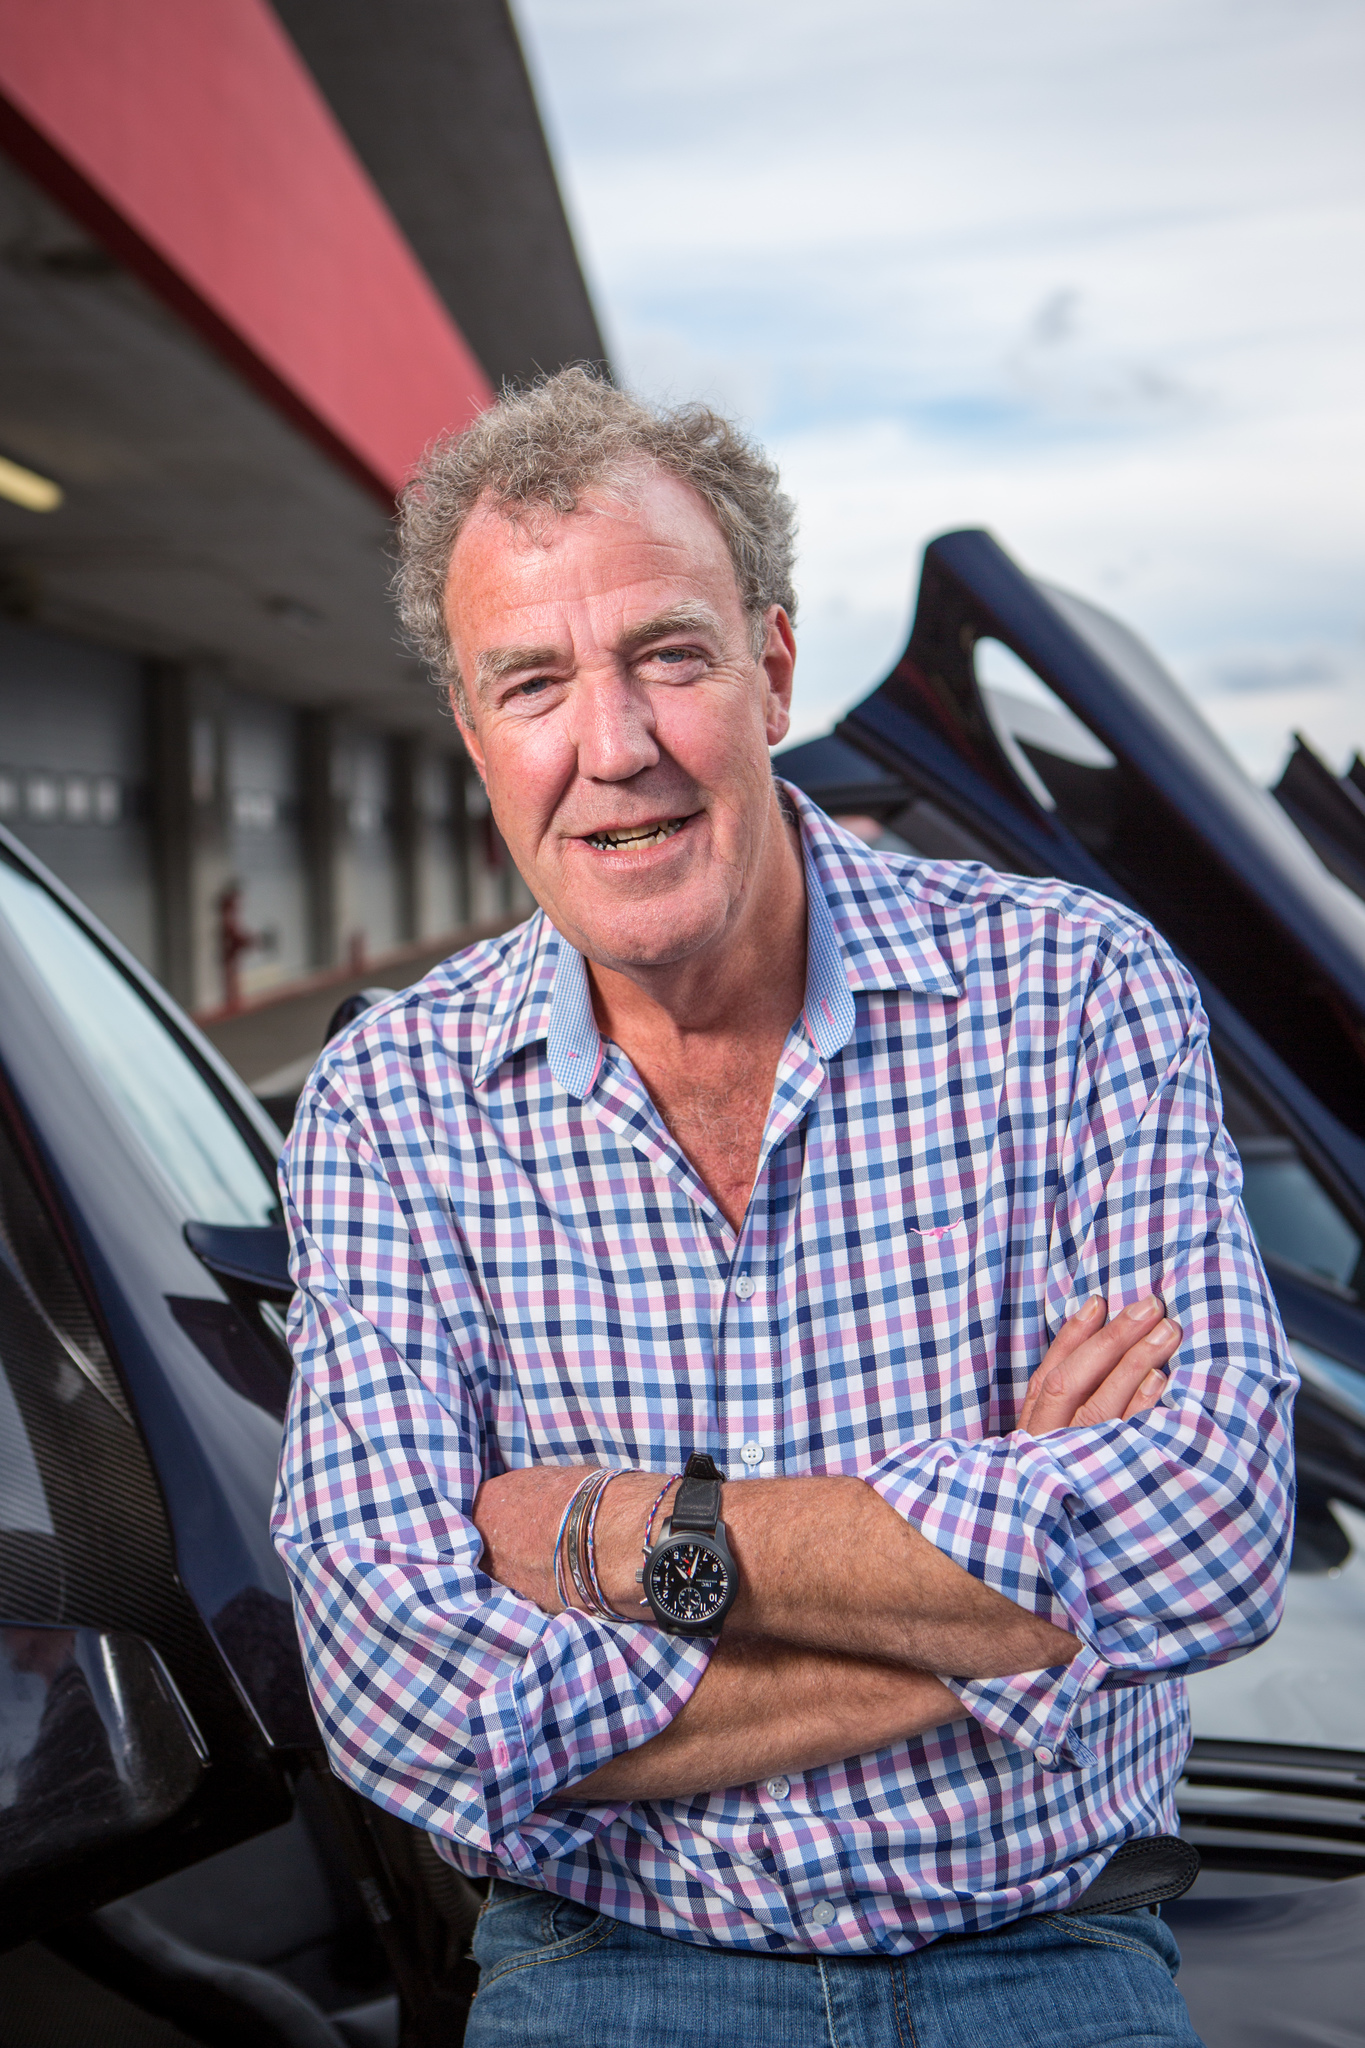 How tall is Jeremy Clarkson?